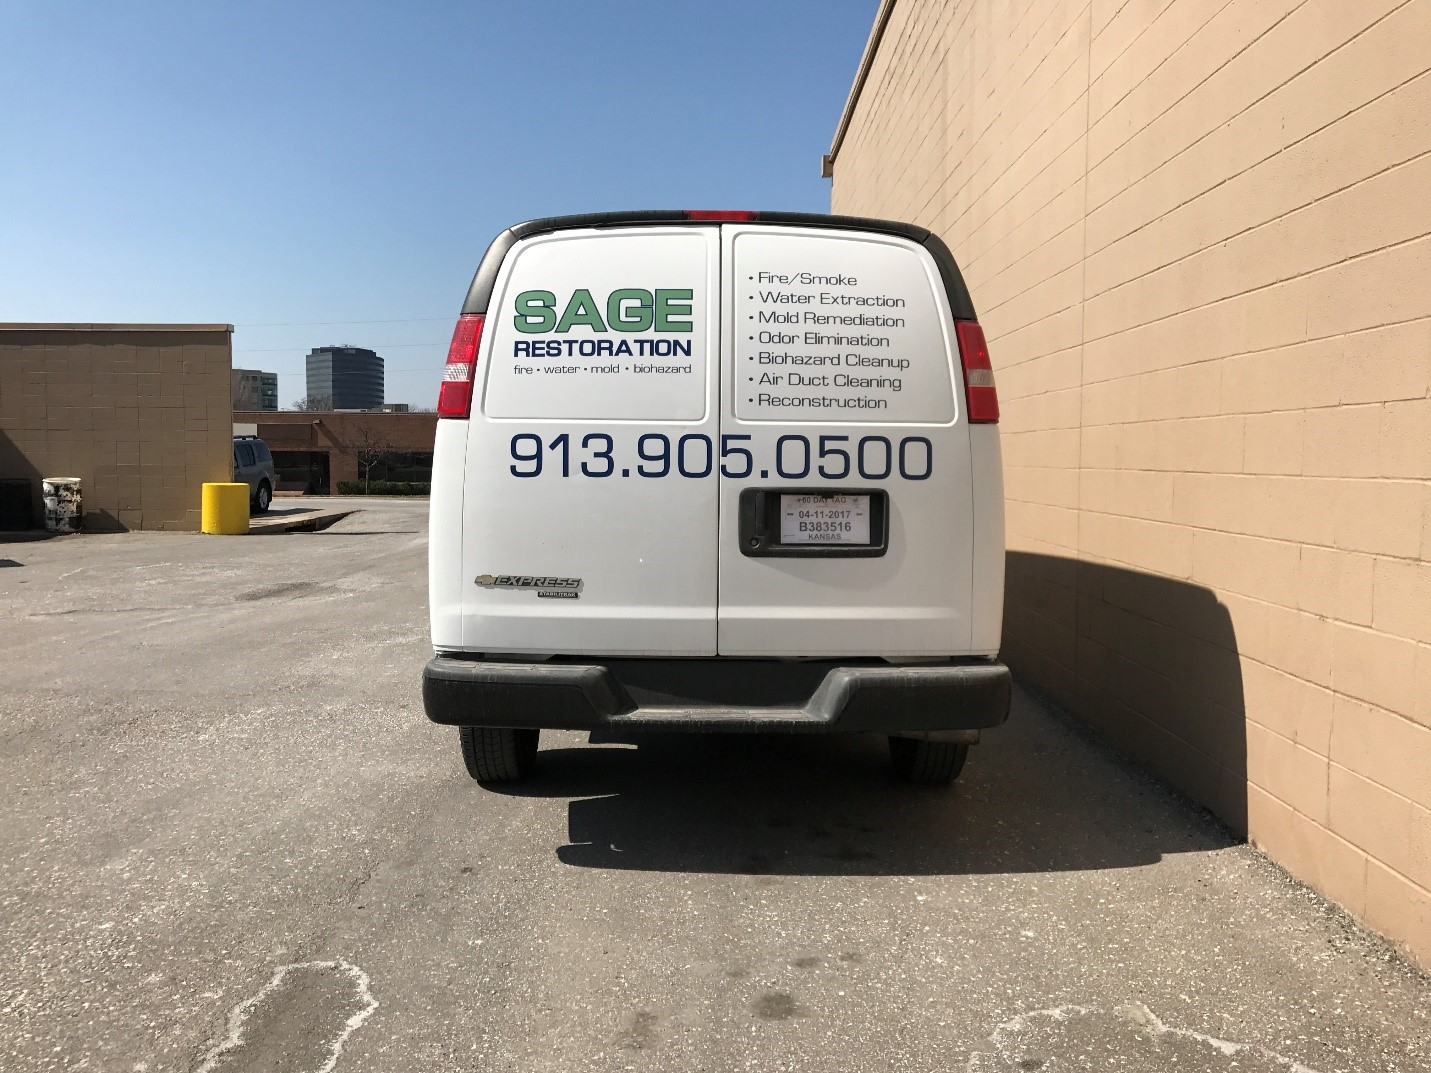 Custom Vehicle Graphics For Sage Restoration - Custom vinyl sign graphics   removal options